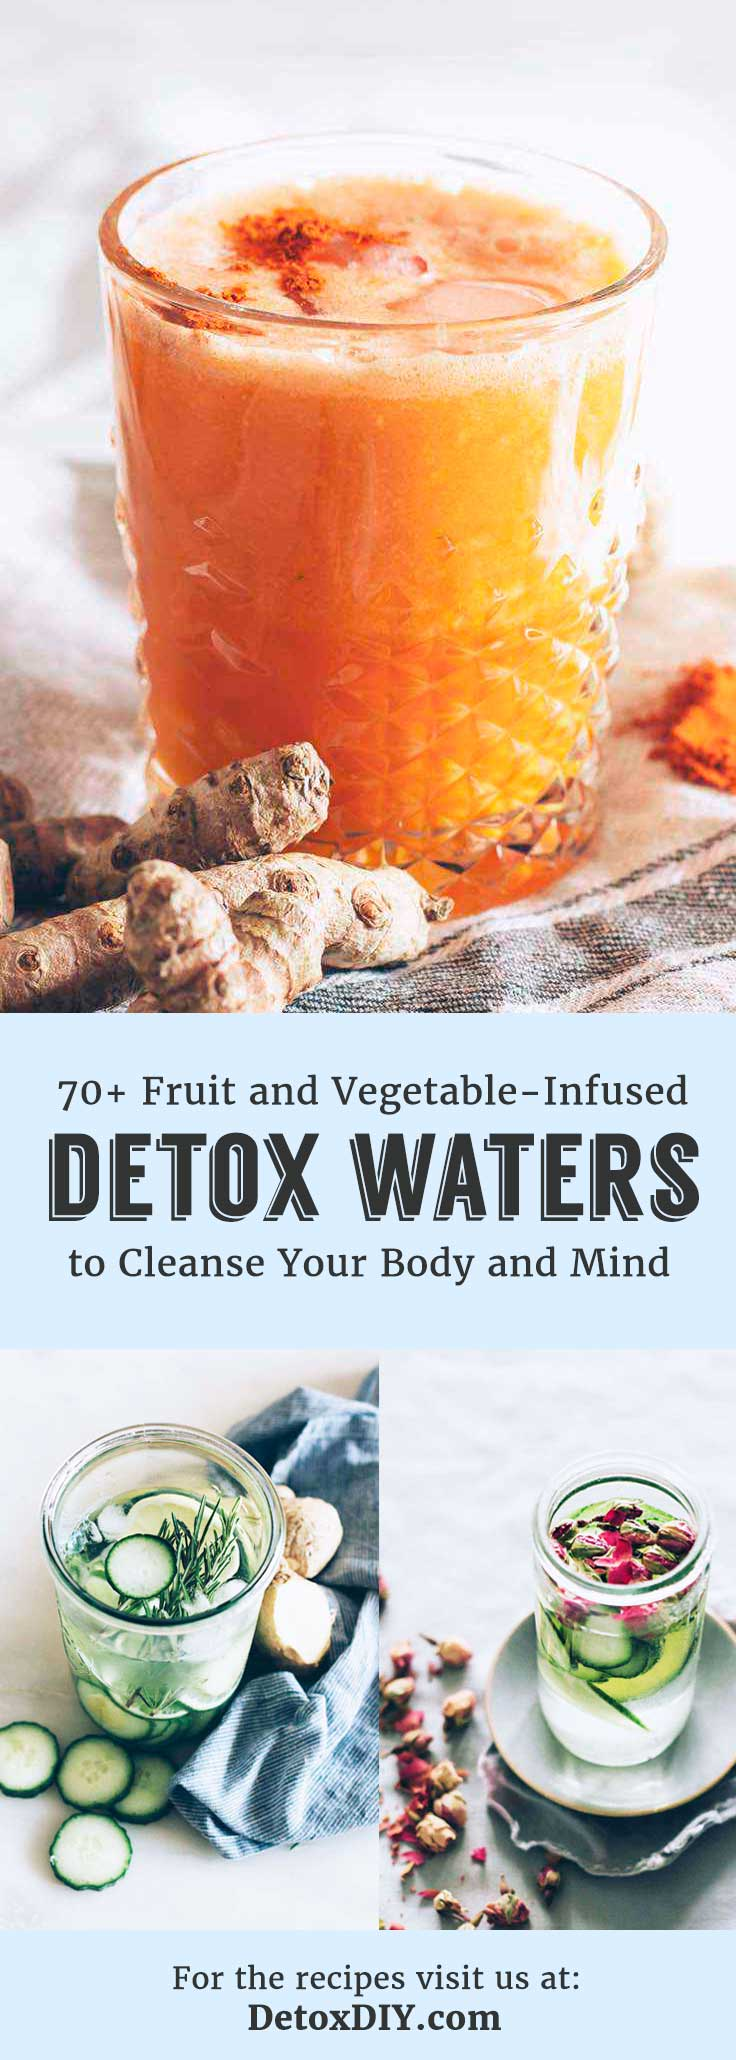 These are the best detox water recipes! Just cut ingredients and let infuse overnight for a refreshing, hydrating, cleansing drink.